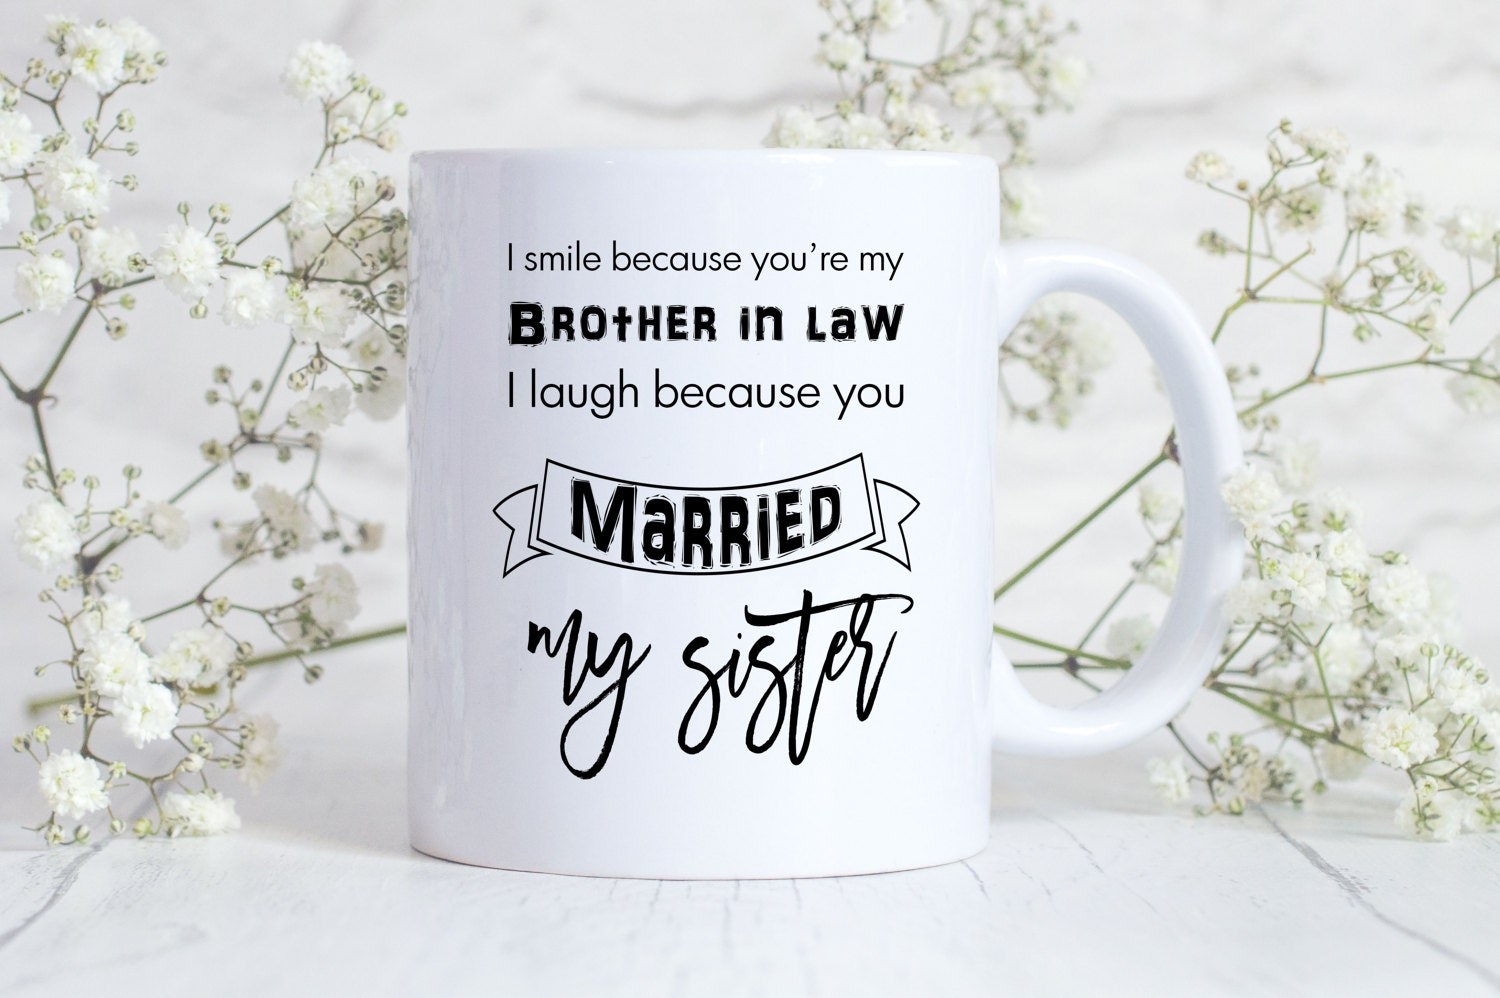 39 Wedding Gift for Sister and Brother In Law Elegant | rilanyc.com